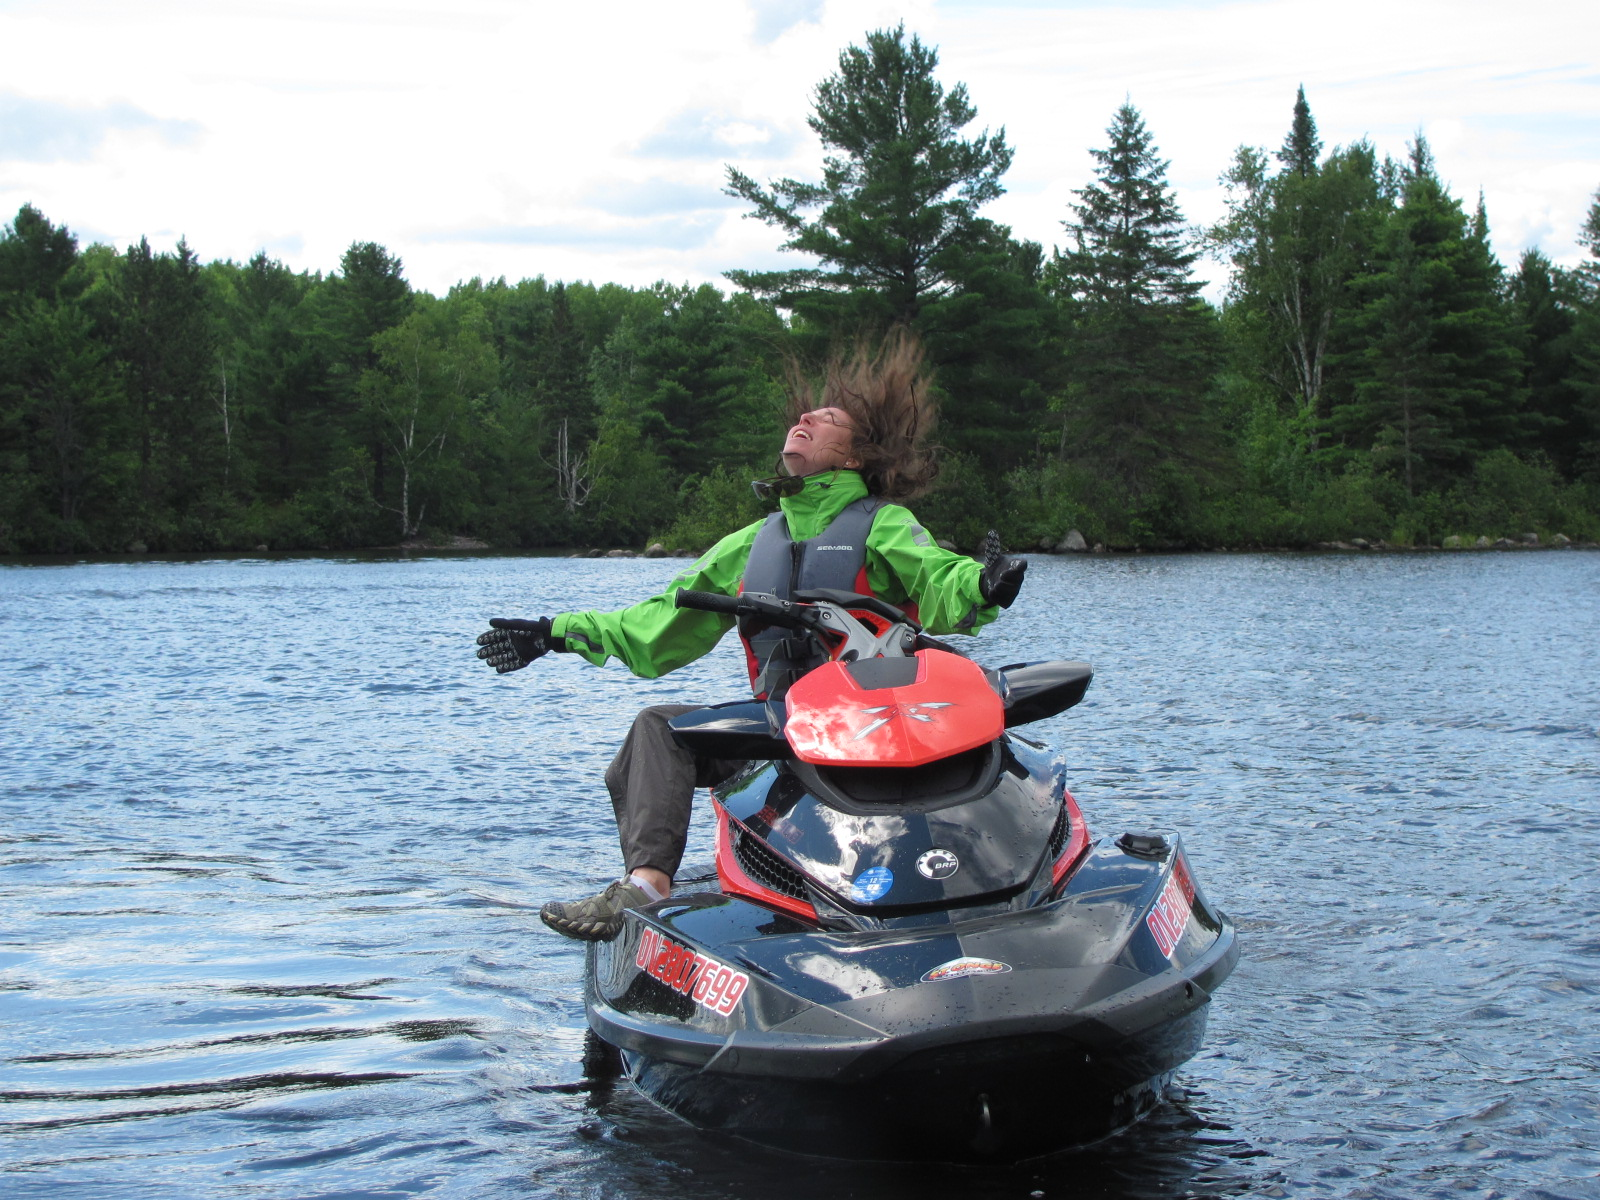 Five Best Ontario Sea Doo River Rides